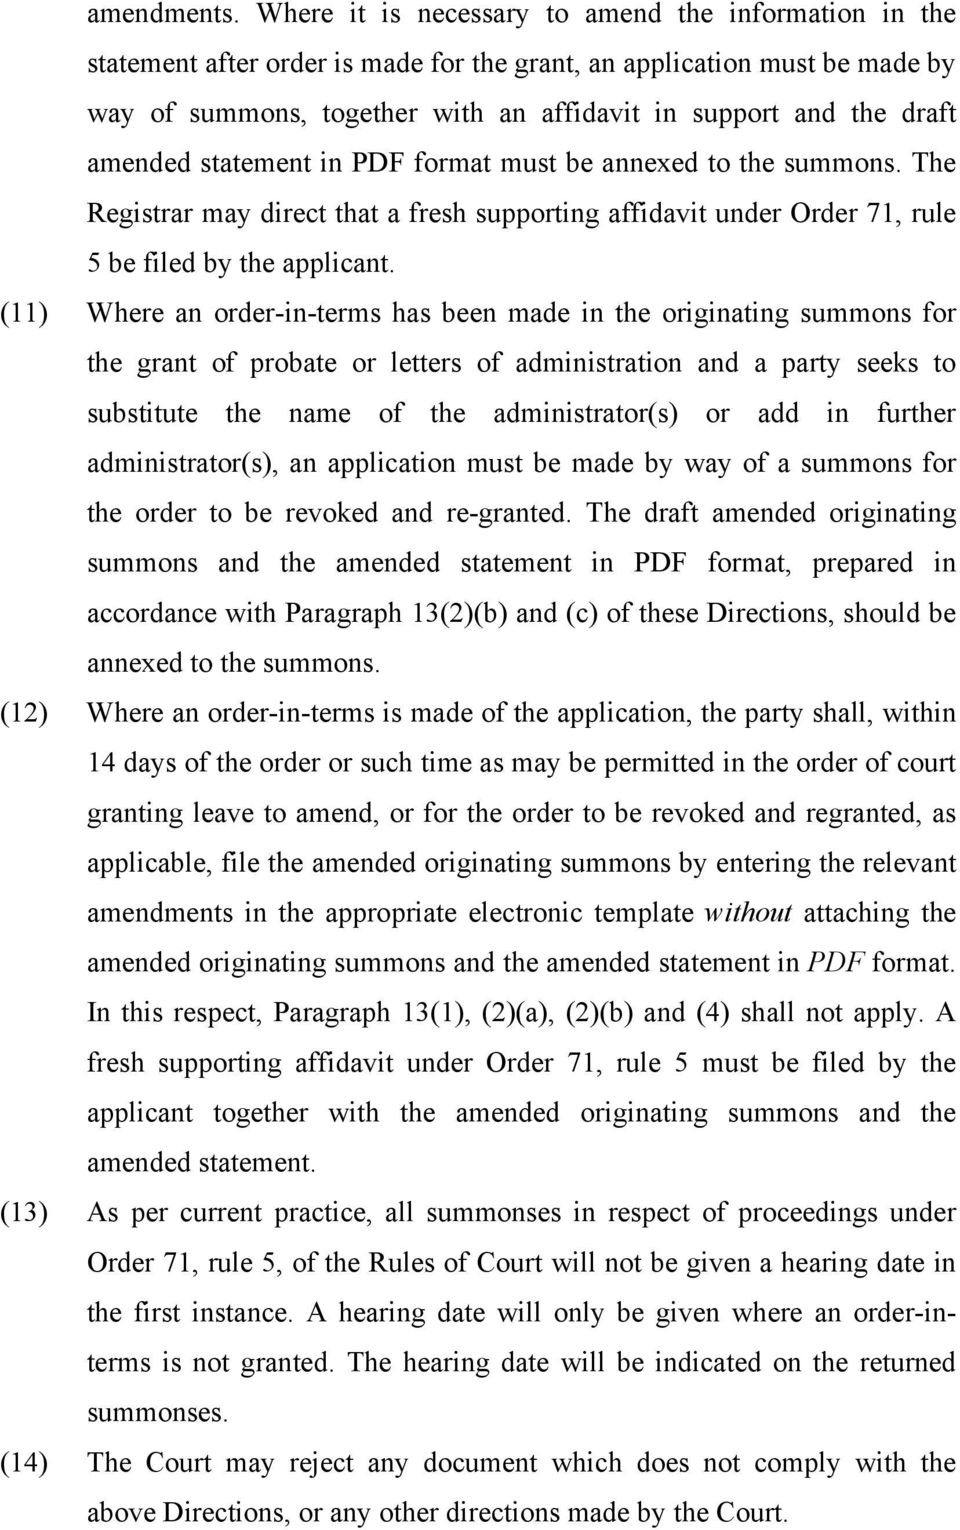 amended statement in PDF format must be annexed to the summons. The Registrar may direct that a fresh supporting affidavit under Order 71, rule 5 be filed by the applicant.